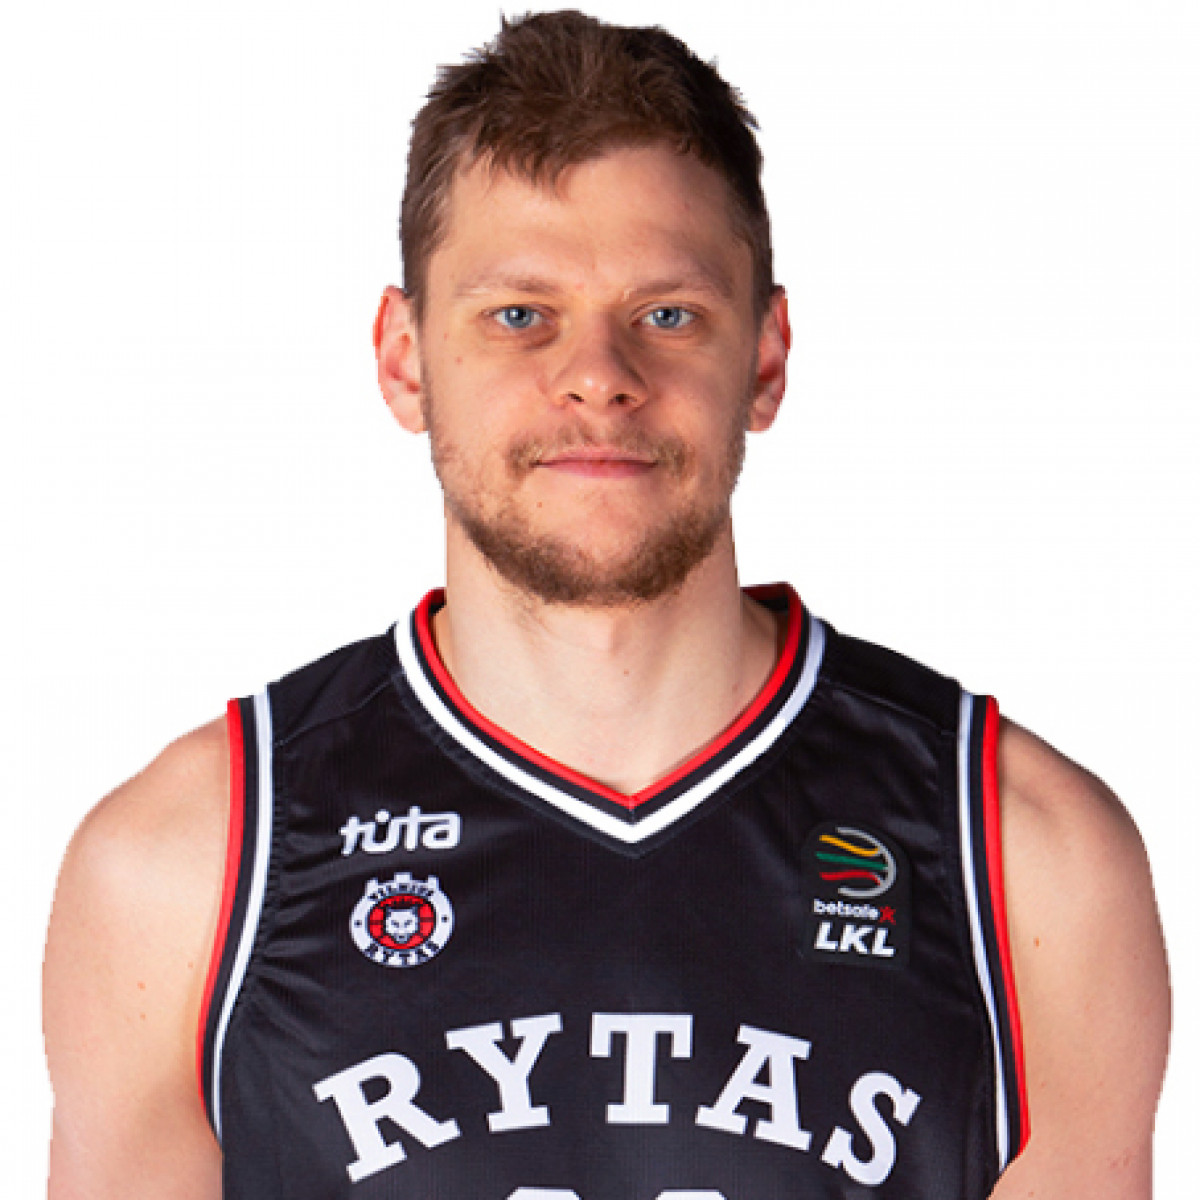 Photo of Eimantas Bendzius, 2018-2019 season